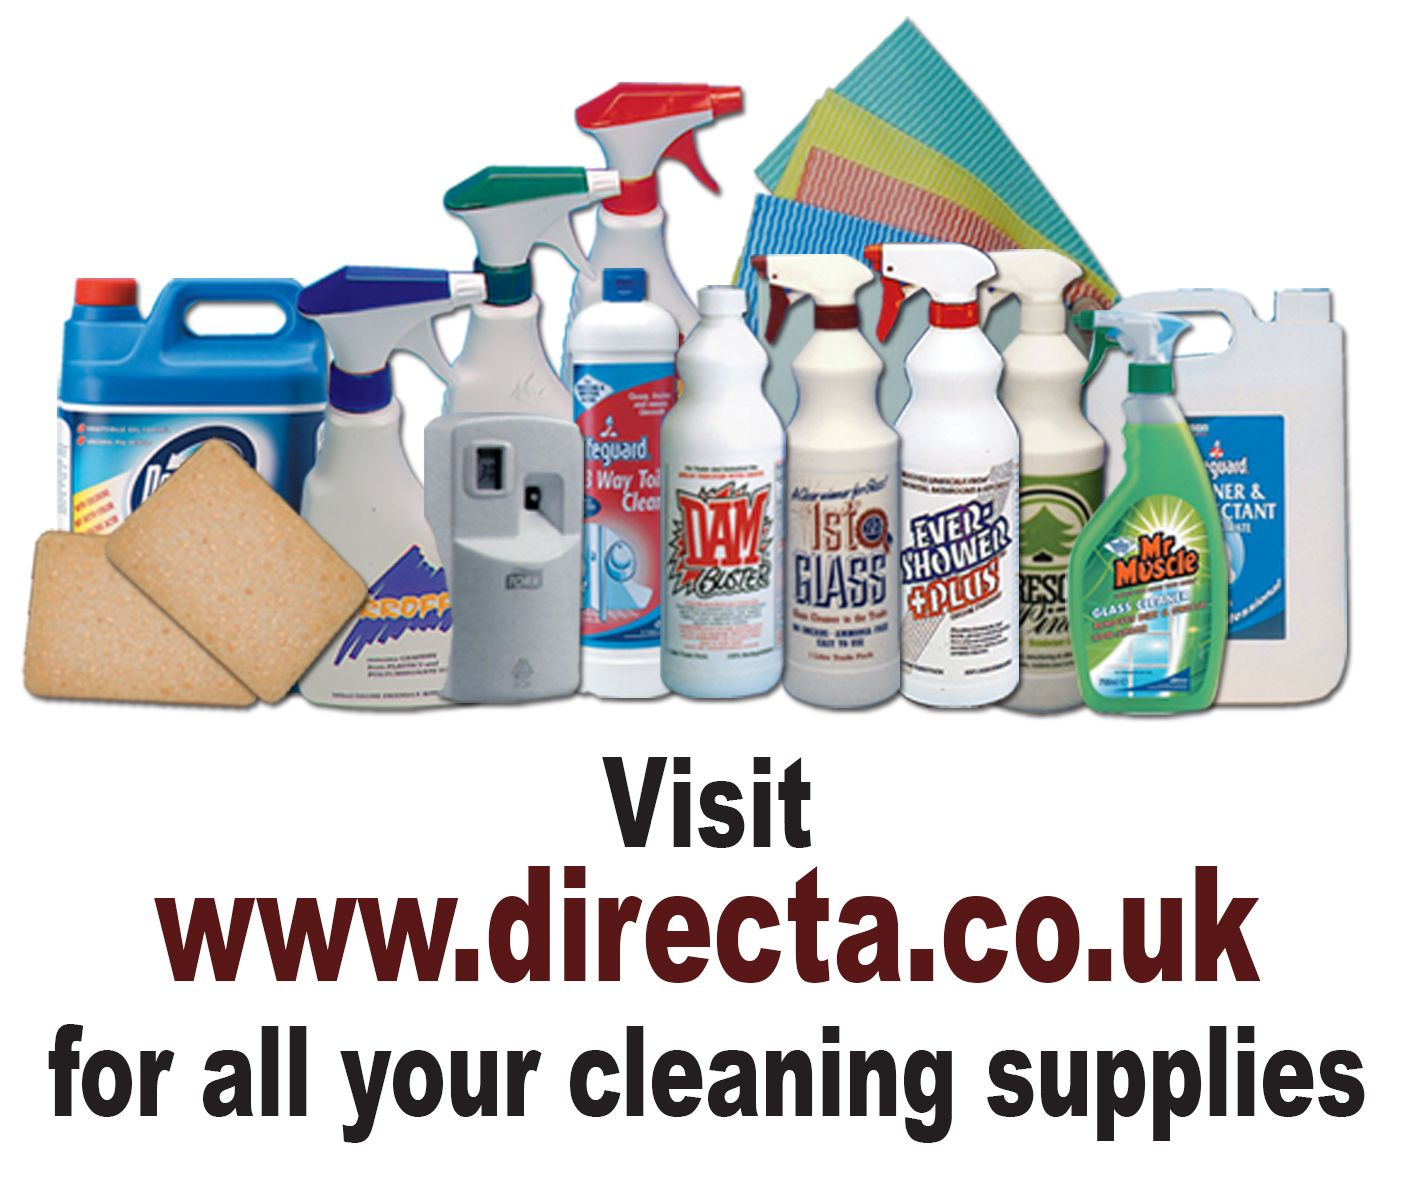 Visit www.directa.co.uk for all your cleaning supplies!